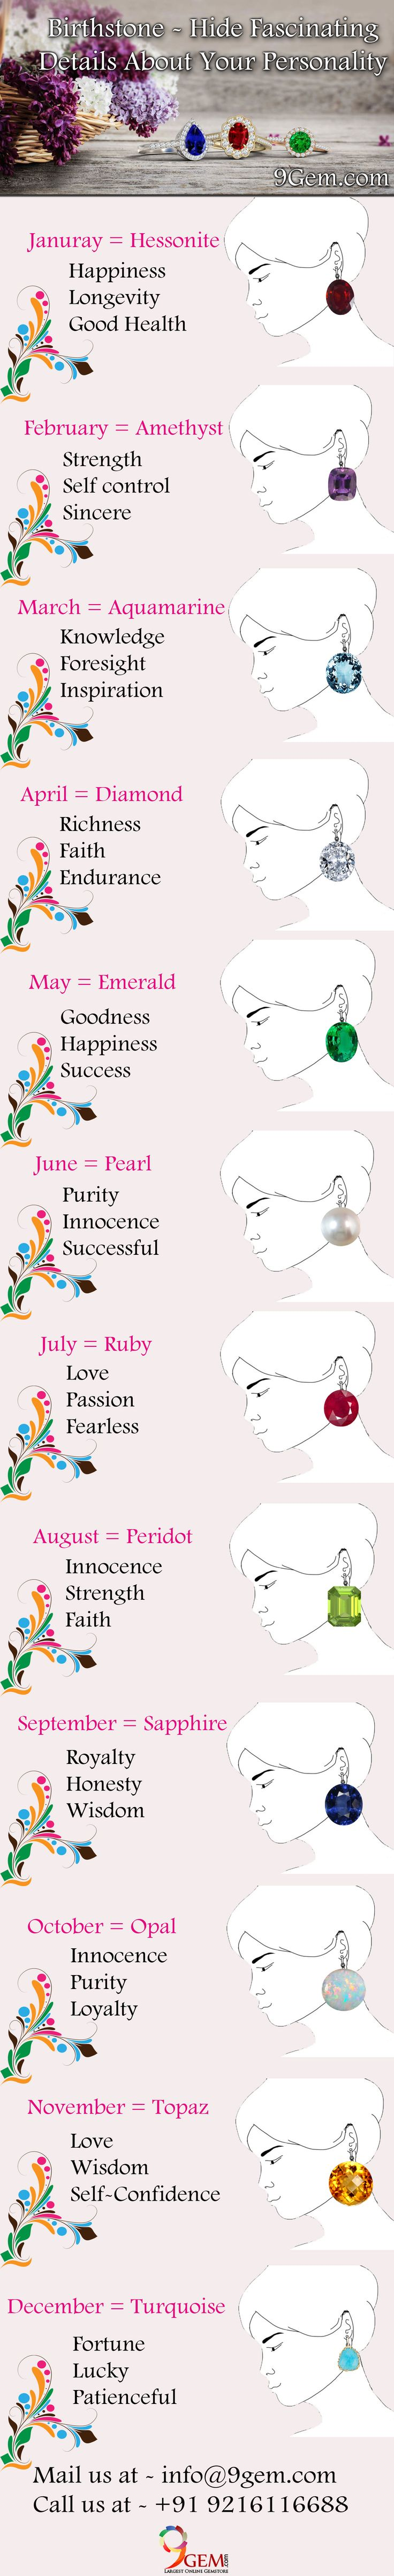 Everybody in the world has a birthstone according to their birth month. Each month is associated with its individual gemstone and each gemstone has its own meaning and symbolism.  So let's check out  what does your gemstones reveal about you?